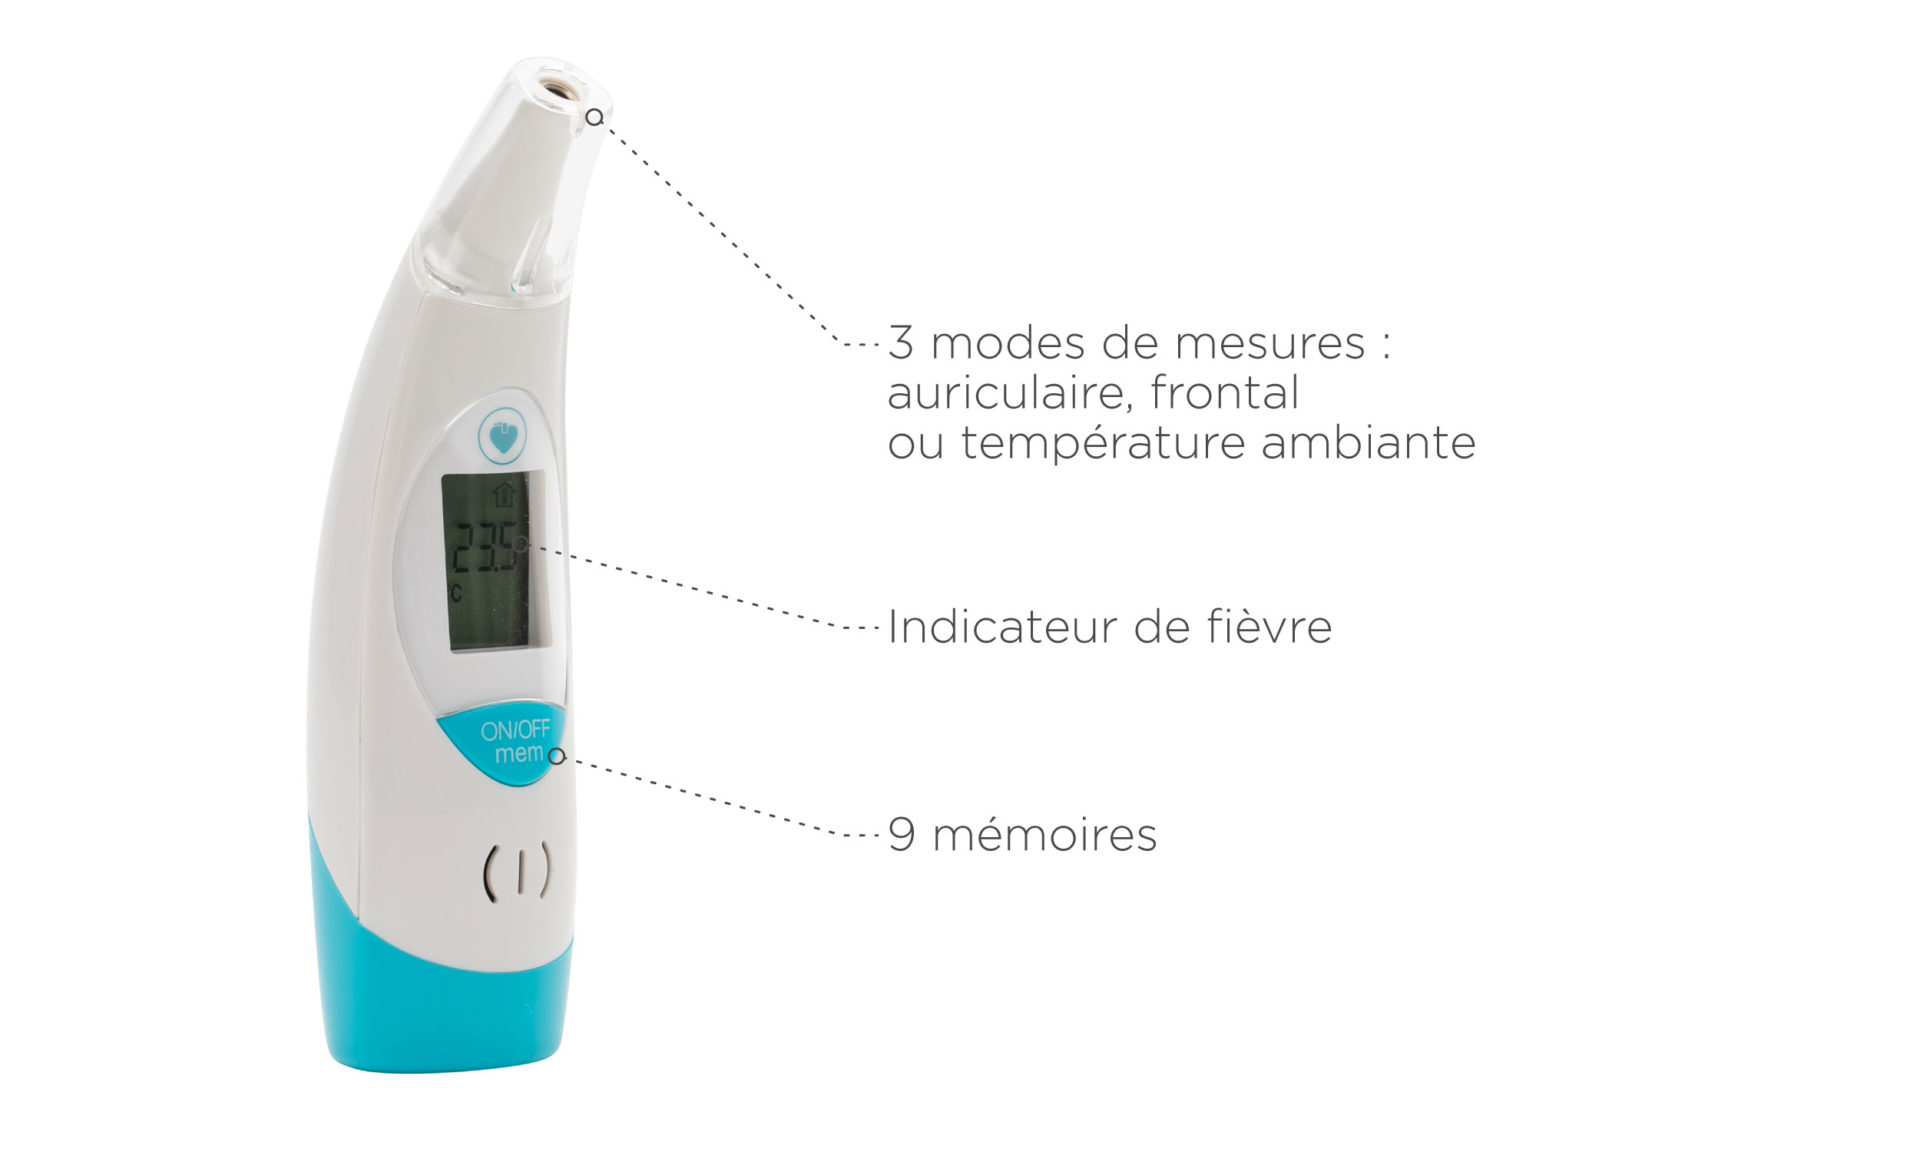 Thermomètre auriculaire et frontal Tempo Duo